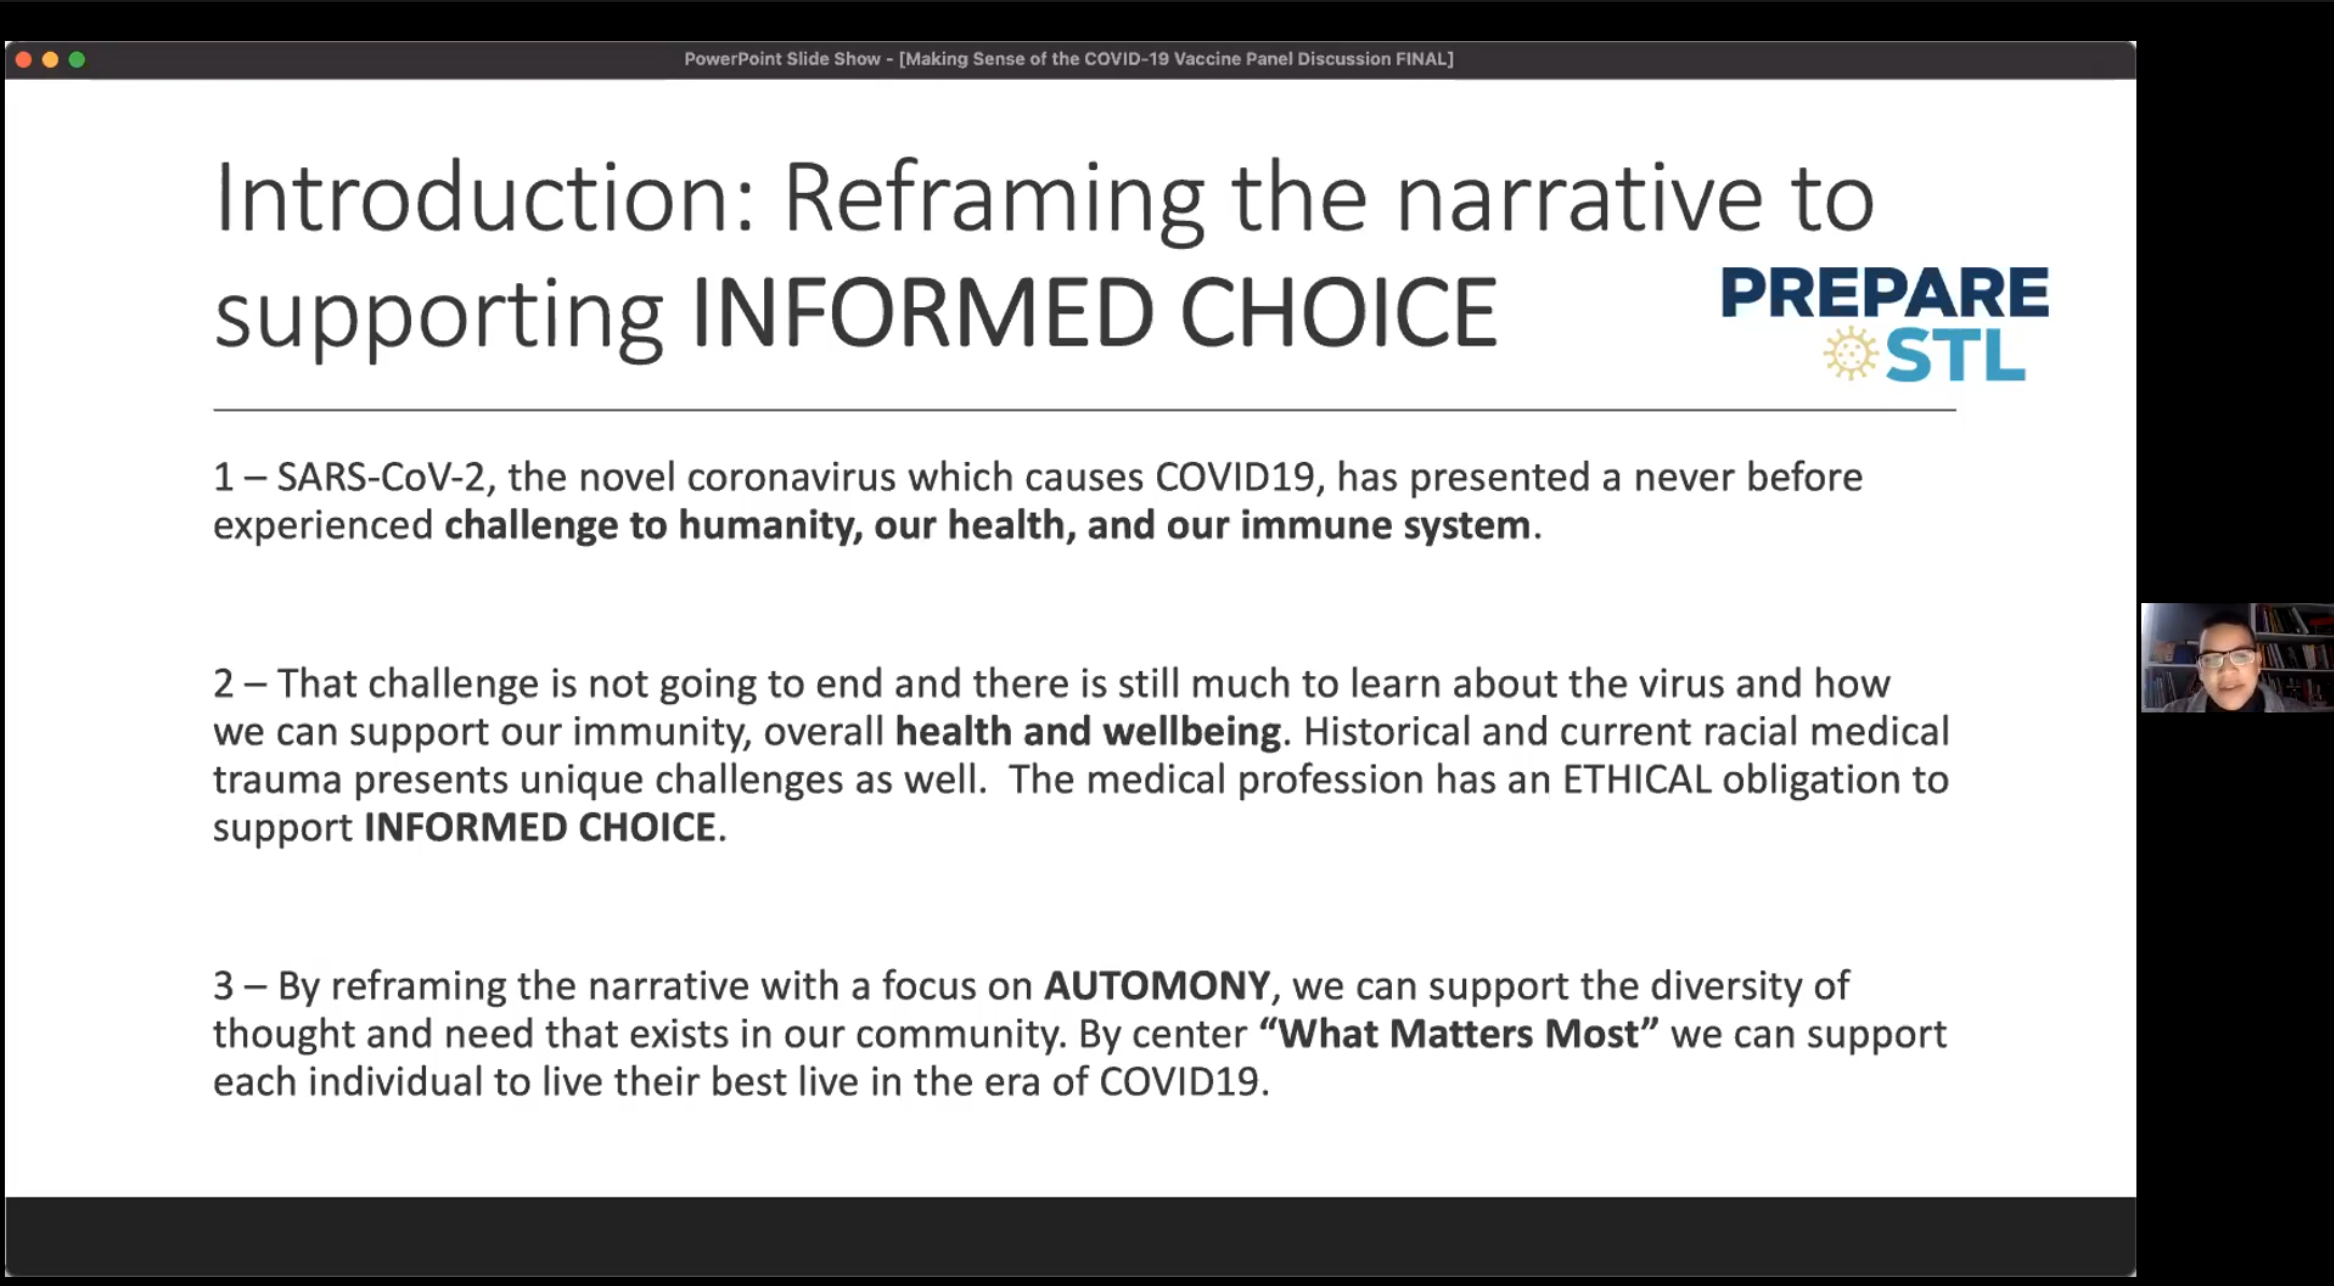 1 - Reframing the Narrative to support Informed Choice